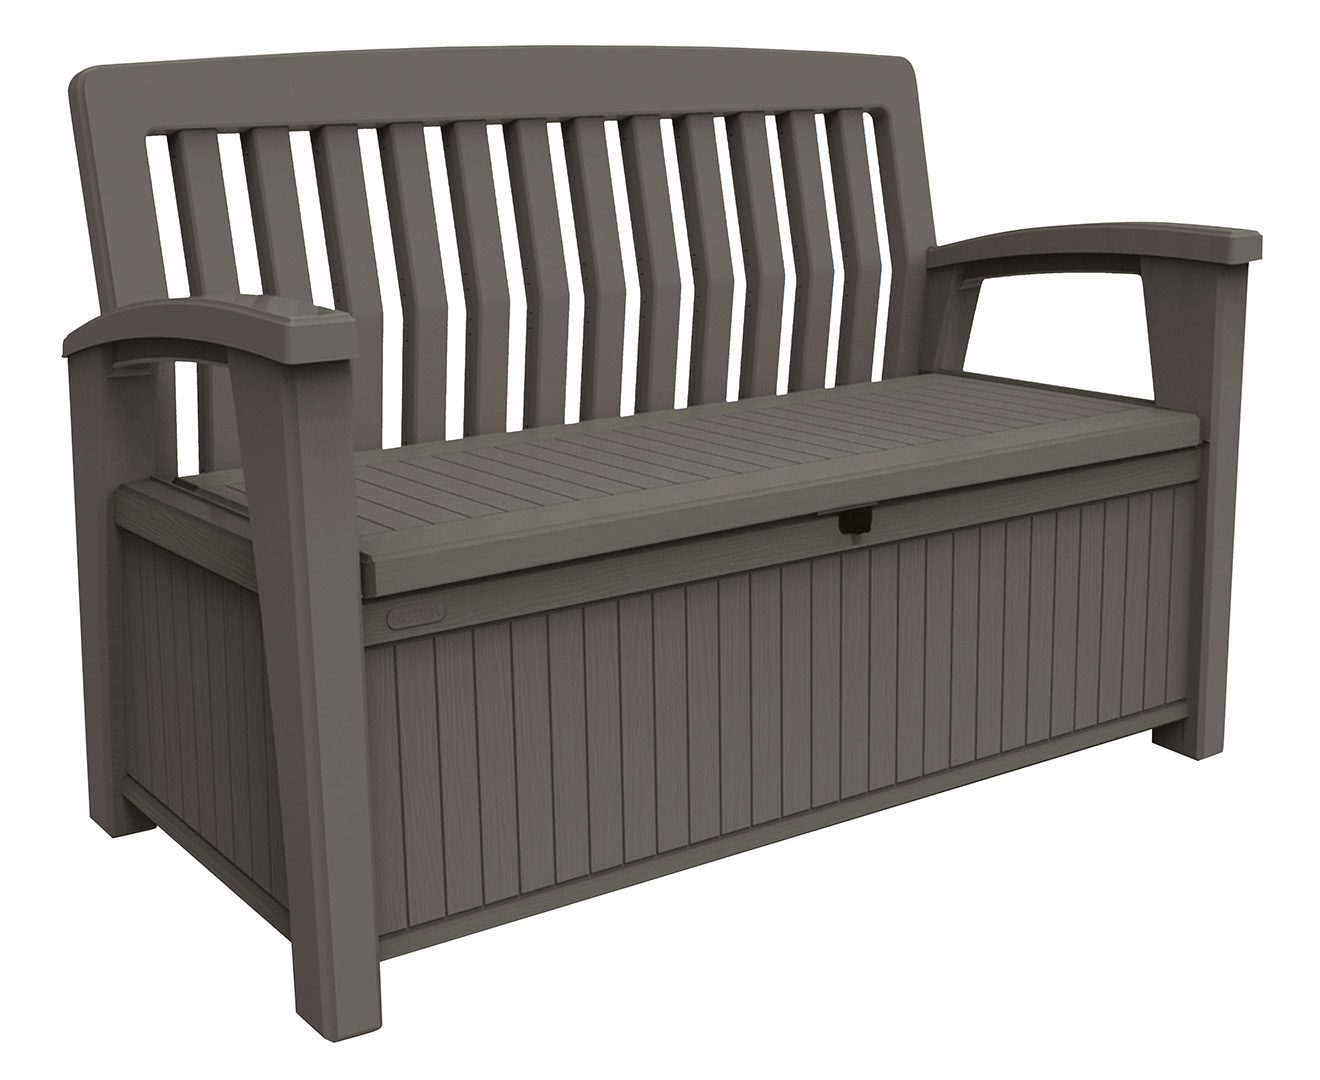 Keter Patio 227l Storage Bench Taupe Great Daily Deals At Australia 39 S Favourite Superstore: home furniture packages australia